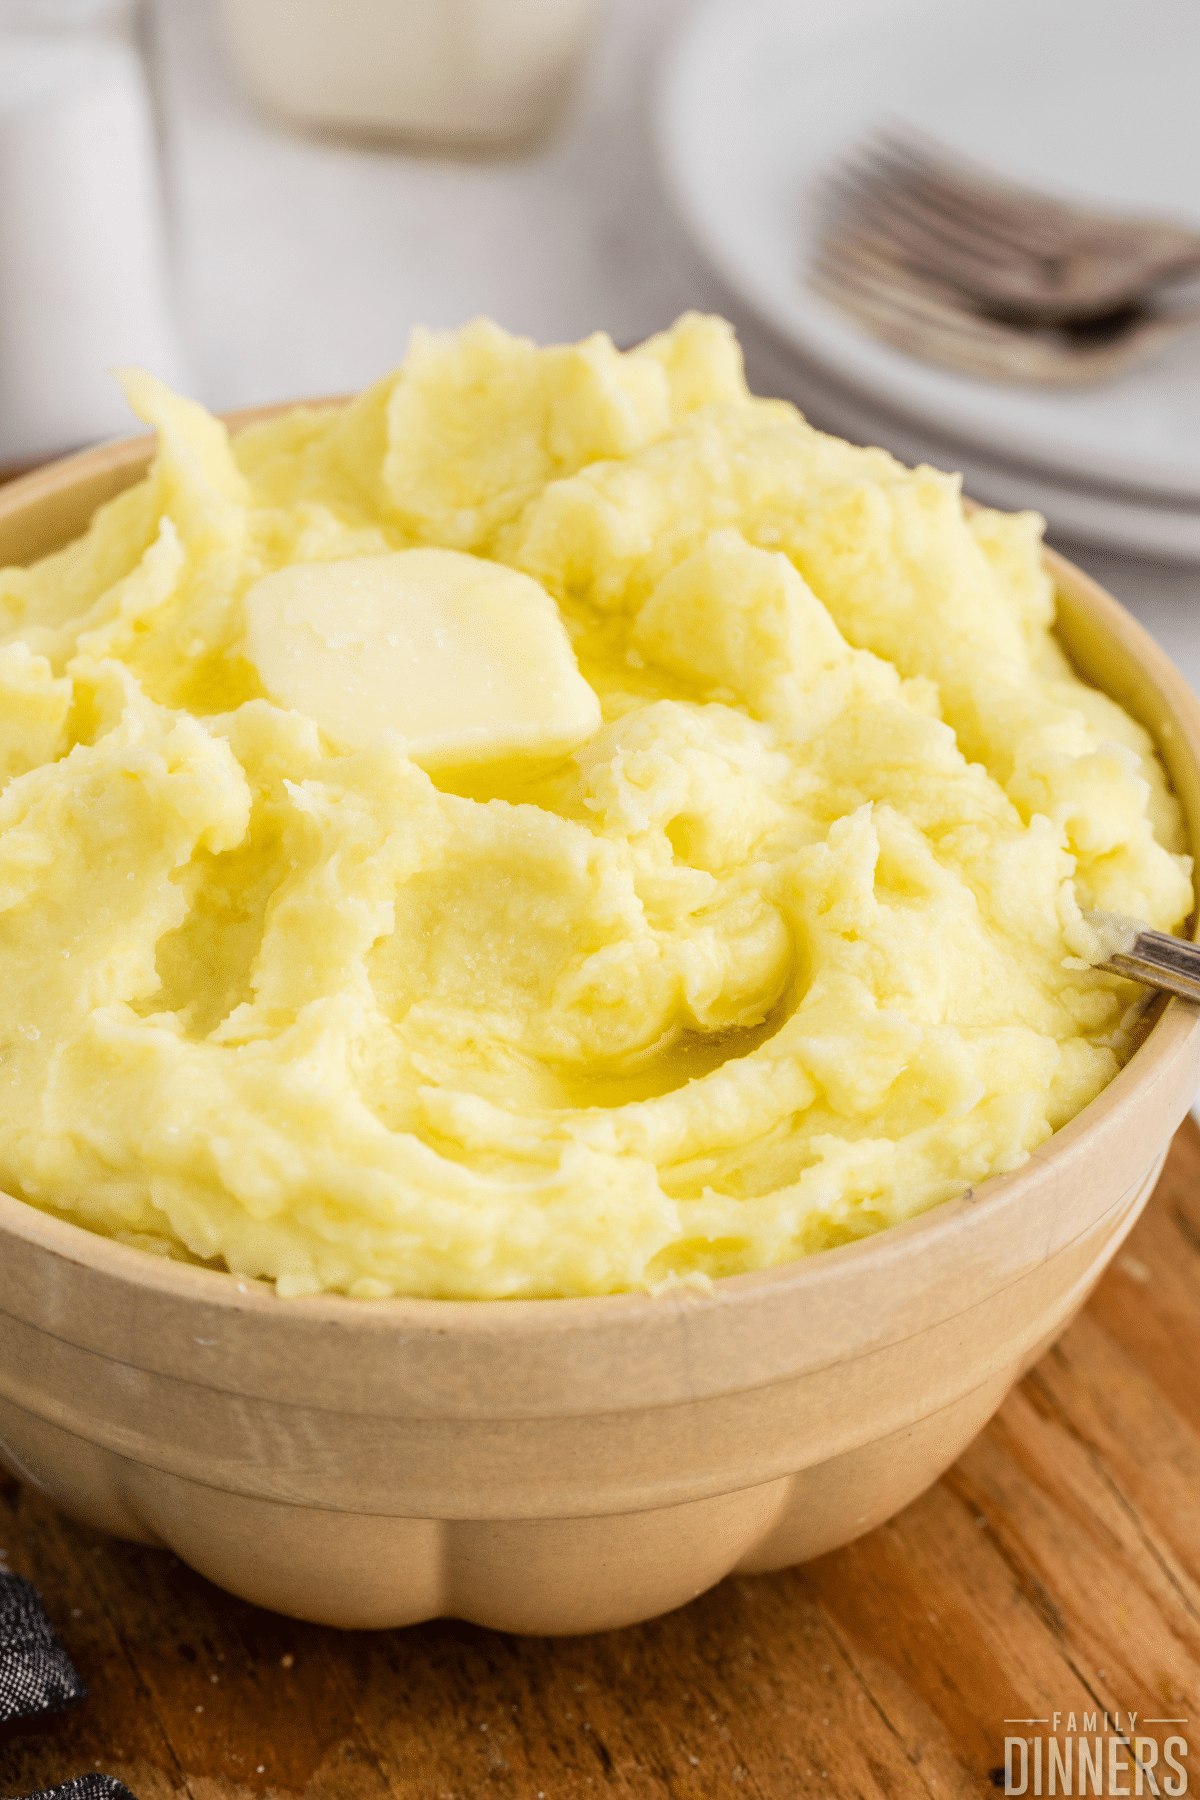 bowl of mashed potatoes with butter on top